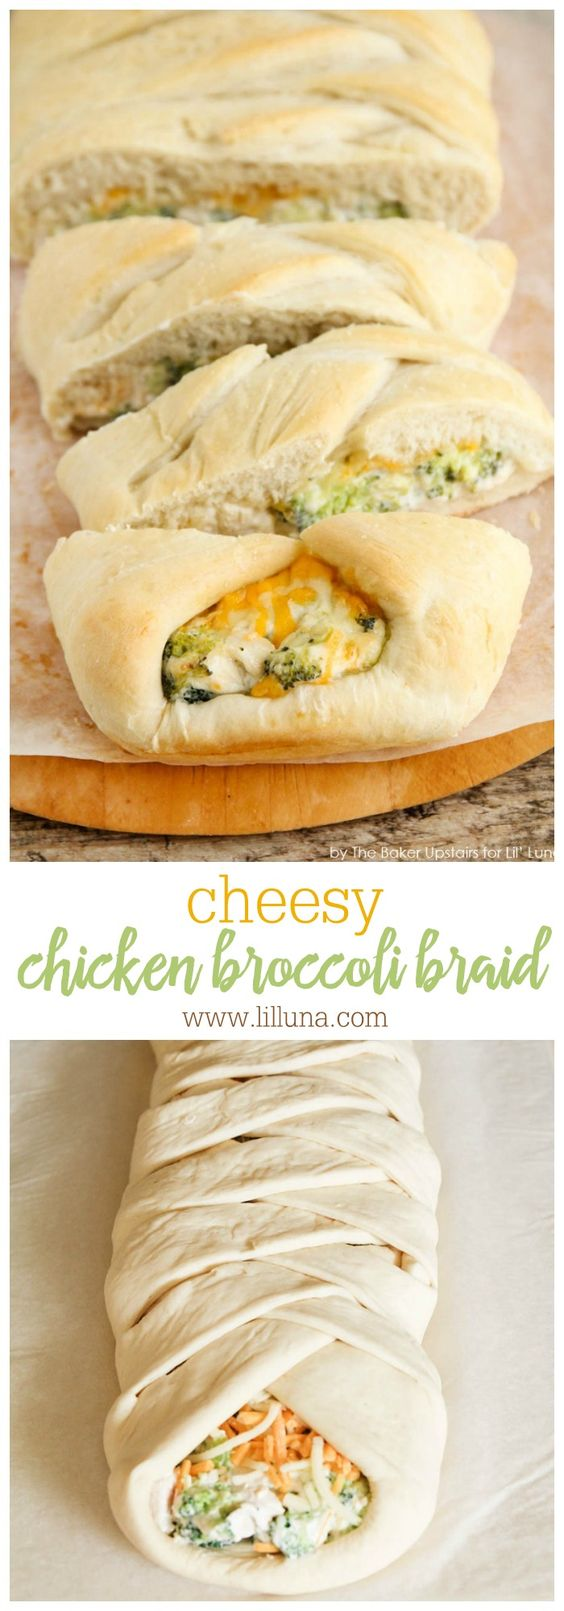 Cheesy Chicken and Broccoli Braid - everyone loves this bread recipe stuffed with cheese and broccoli!